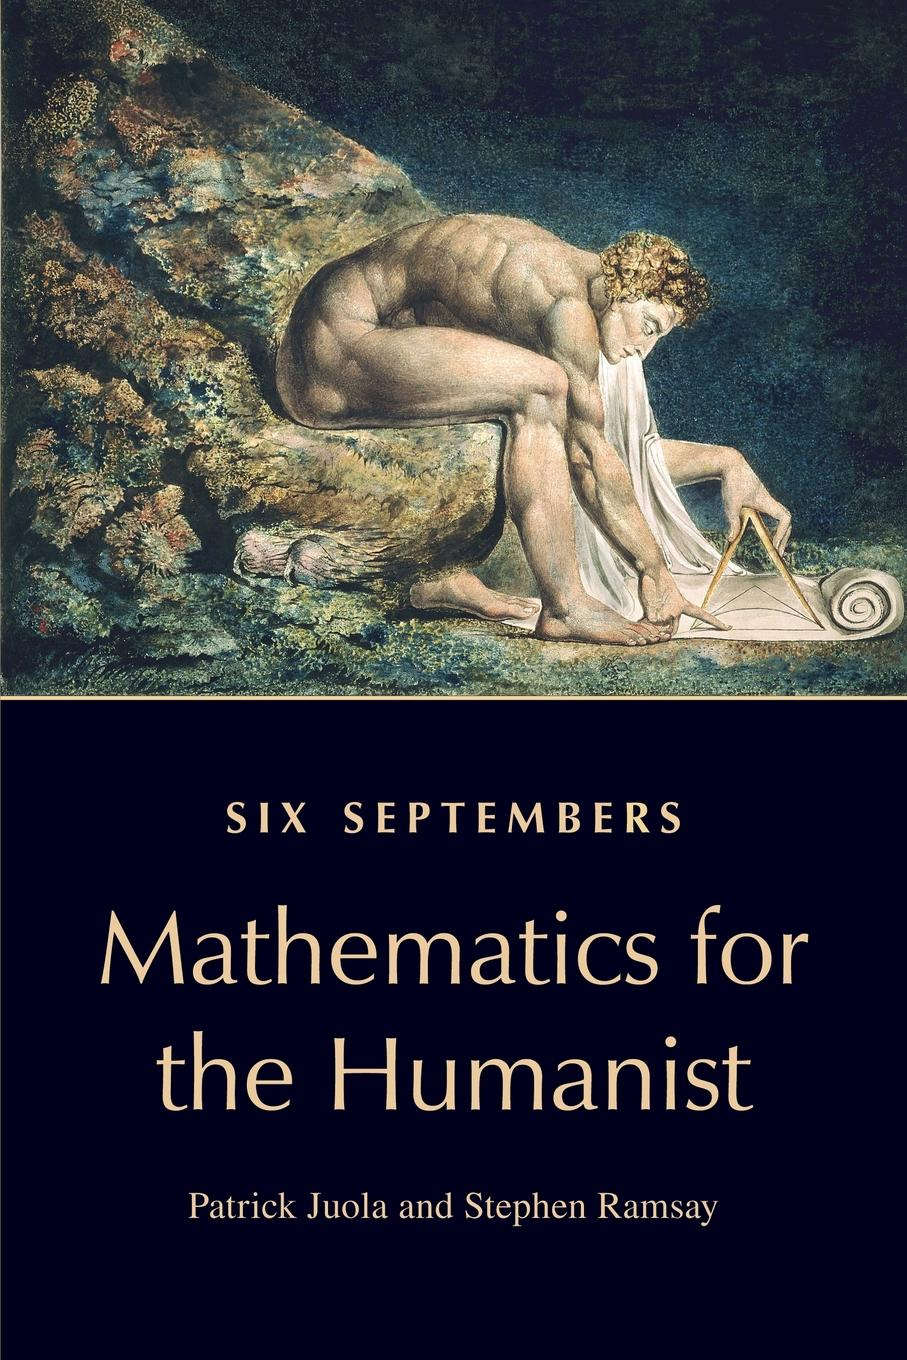 Patrick Juola, Stephen Ramsay Six Septembers. Mathematics for the Humanist